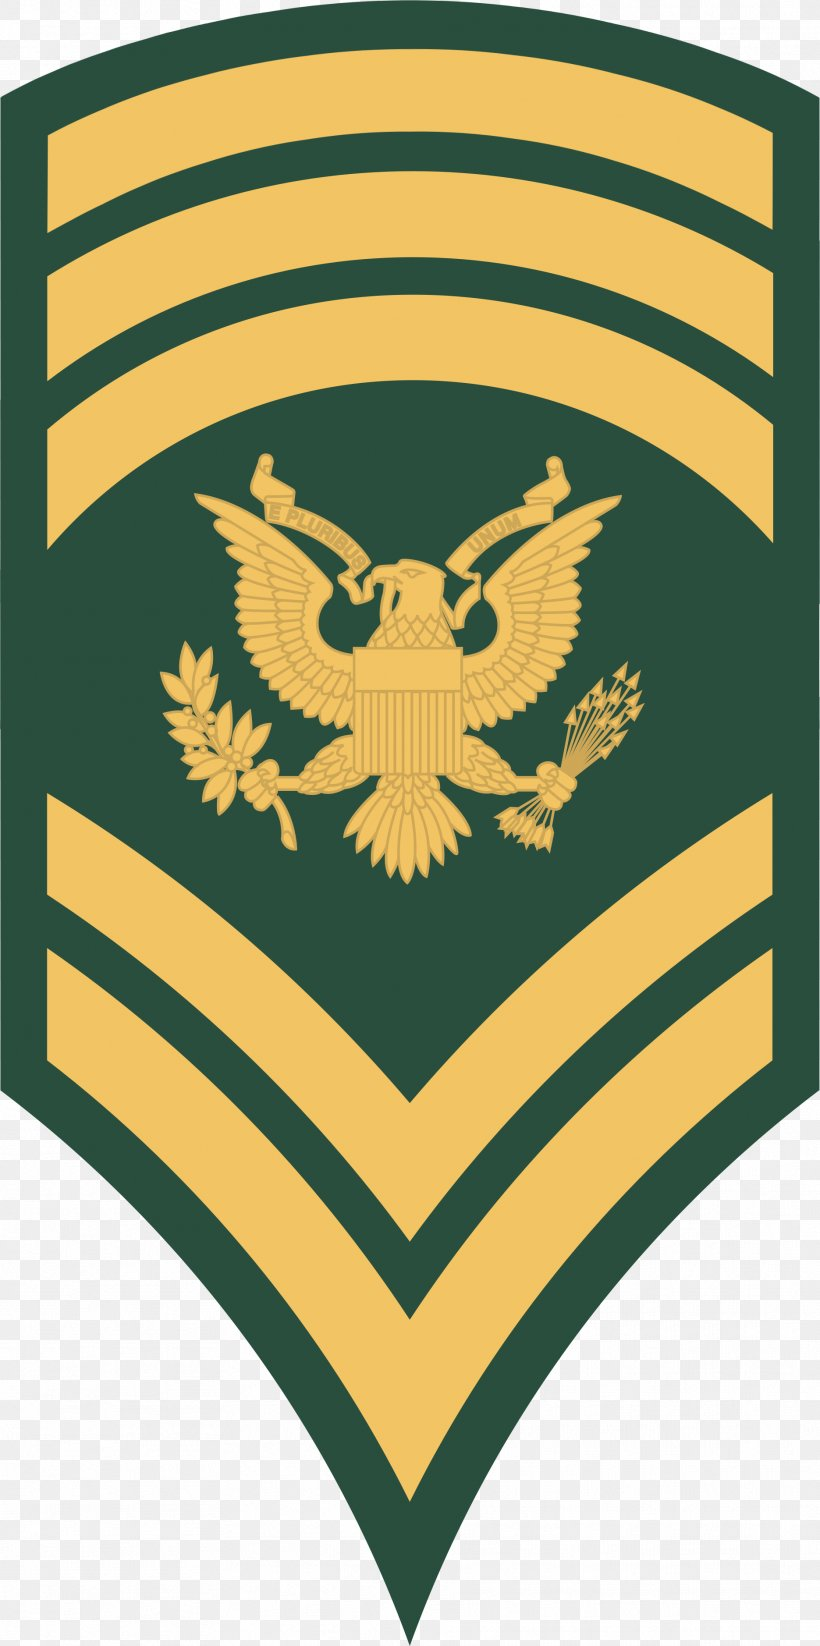 Specialist United States Army Military Rank Non-commissioned Officer, PNG, 1871x3756px, Specialist, Area, Army, Brand, Corporal Download Free